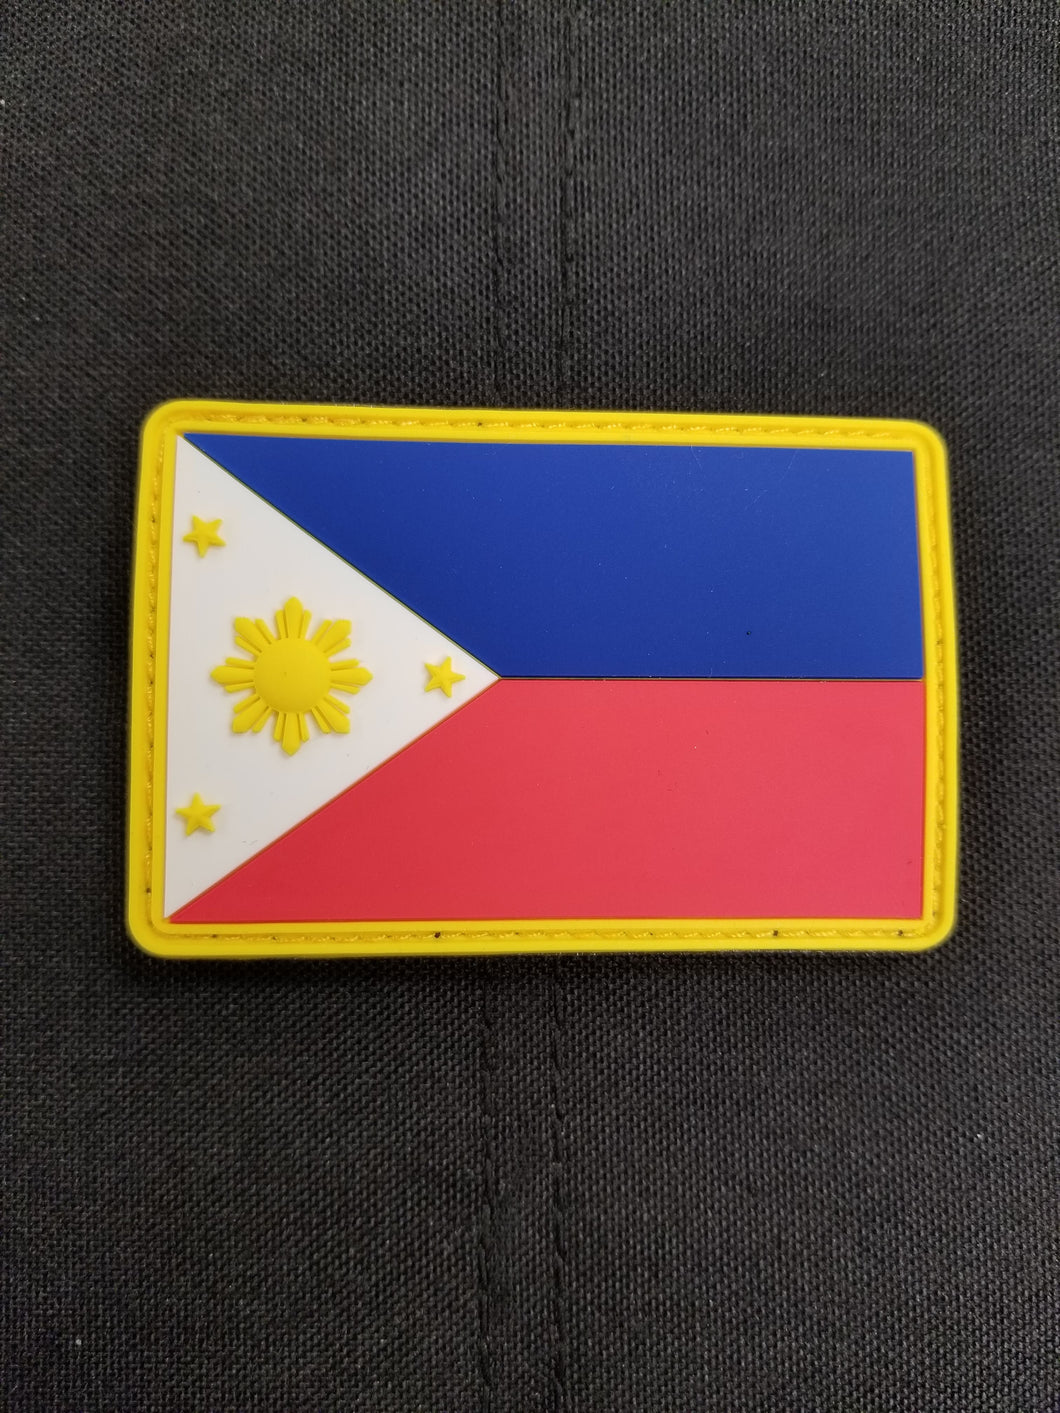 Phillippines Flag PVC Full Color